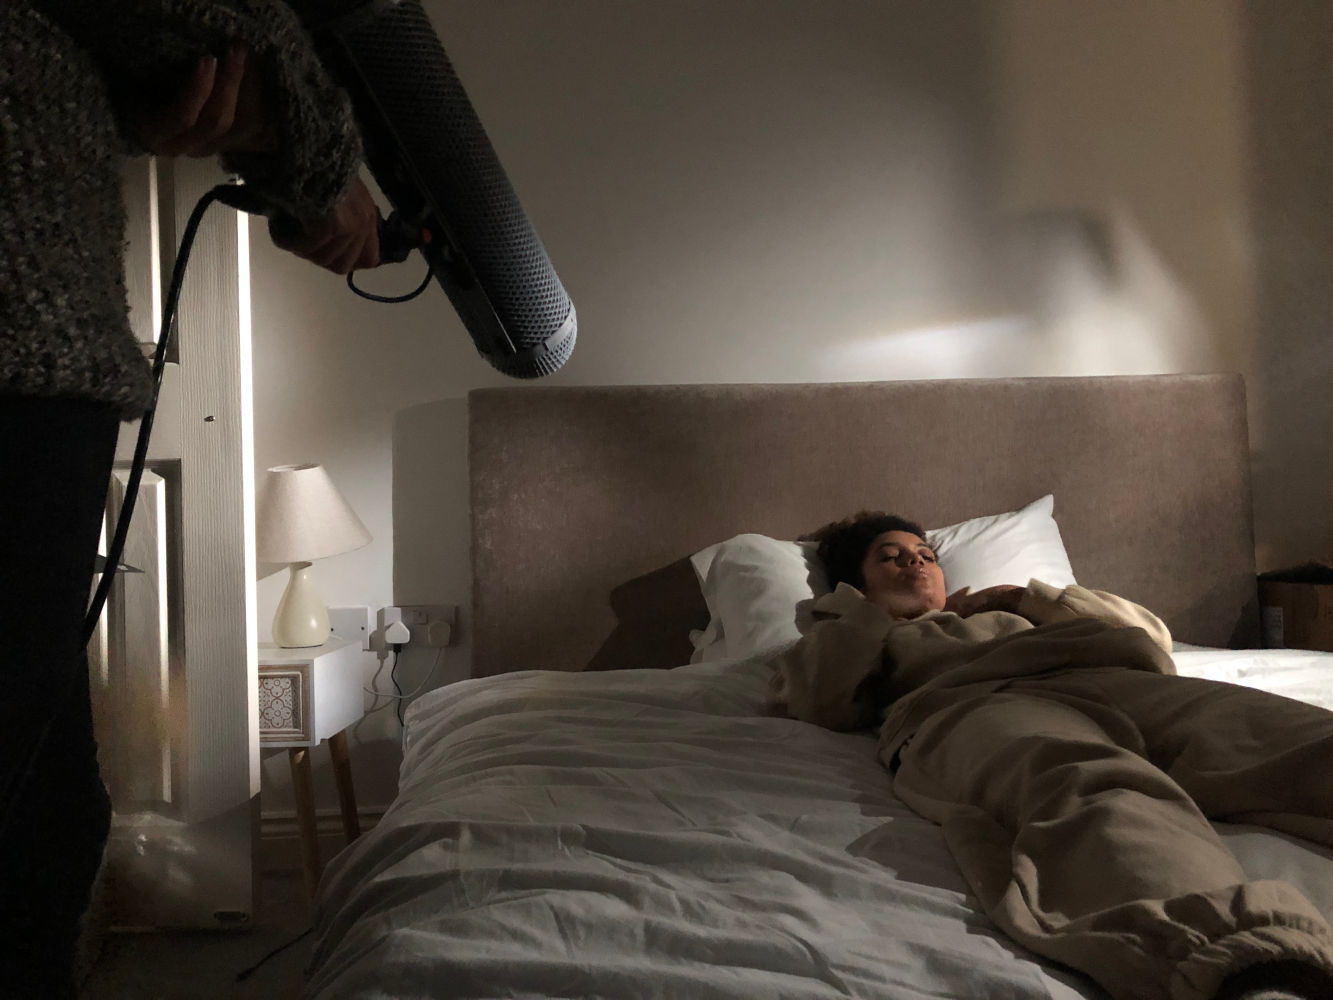 Behind the scenes image from Liam Calvert's Voyager short film with a microphone blimp in shot